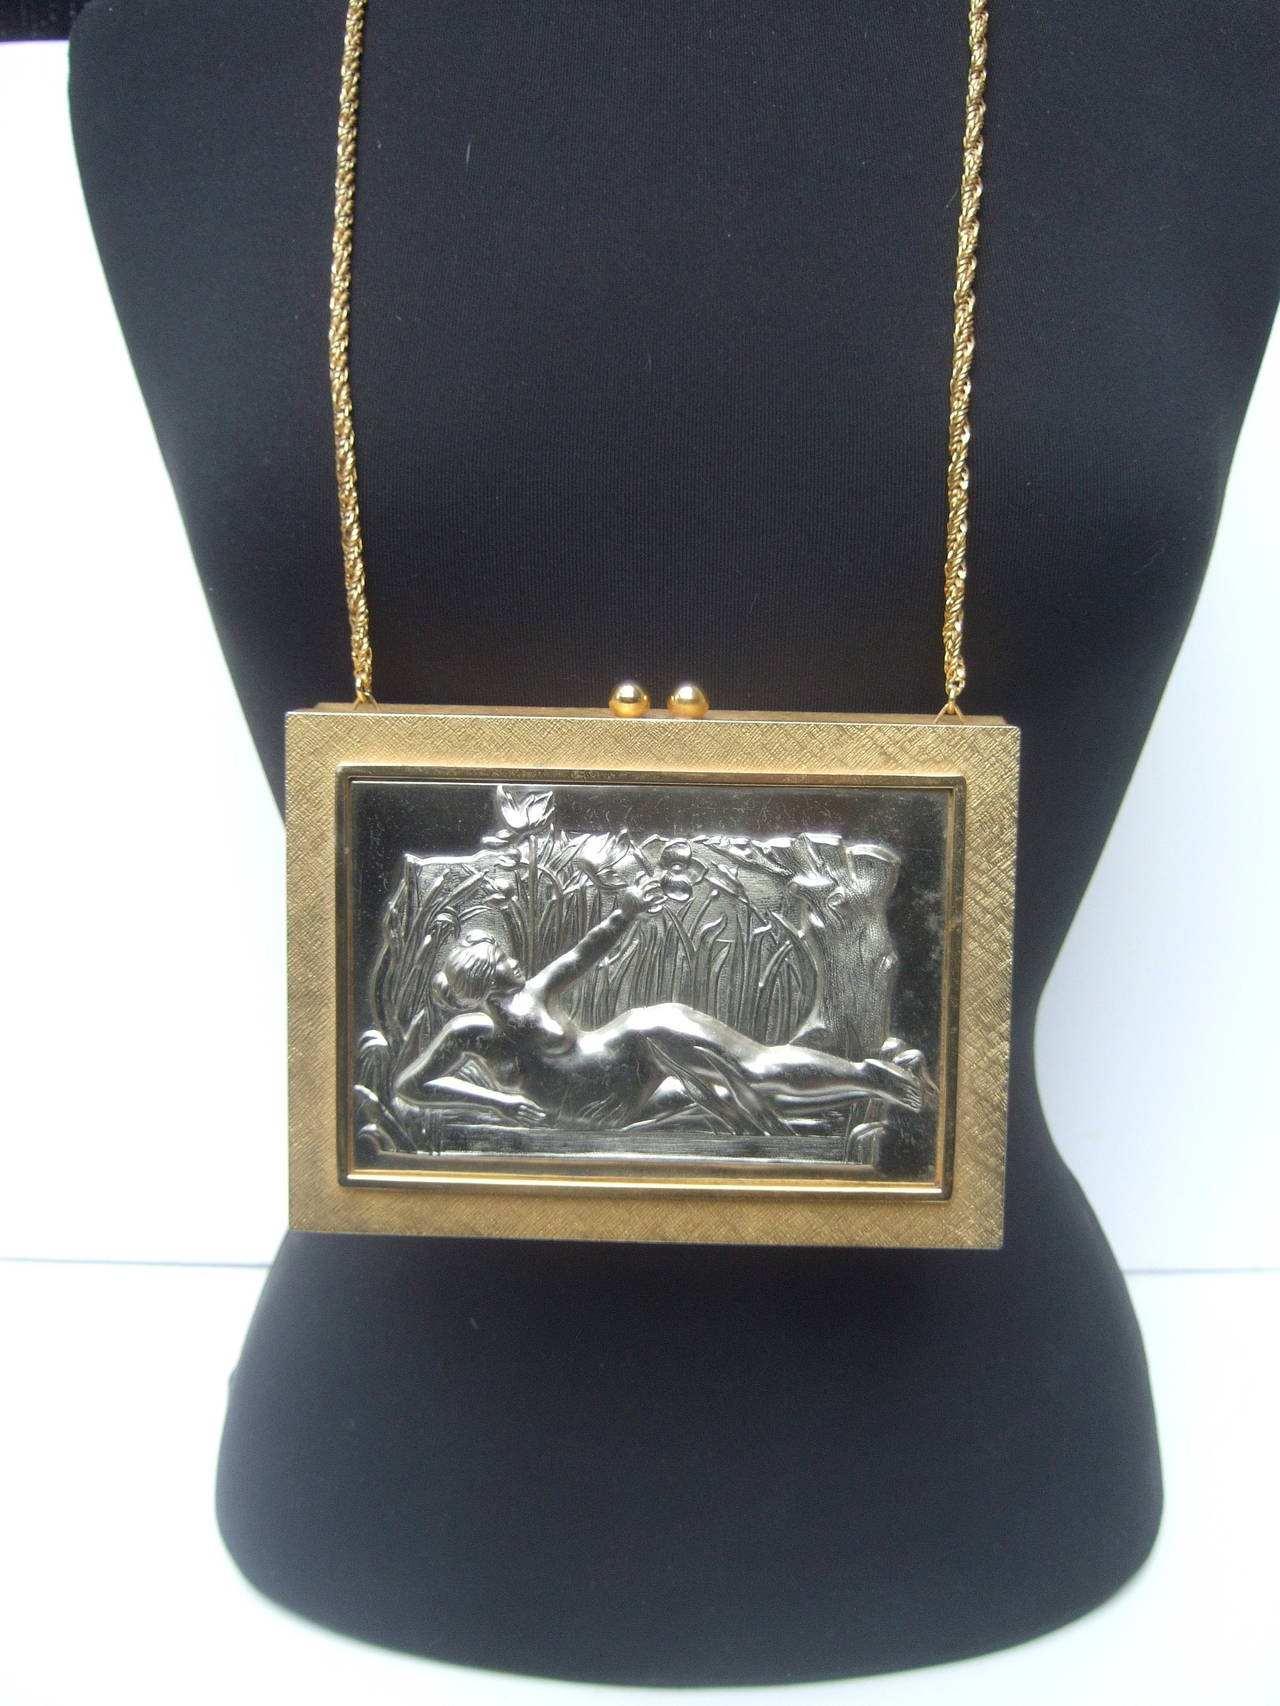 Exquisite Italian Gilt Metal Evening Bag Designed by Harry Rosenfeld For Sale 2